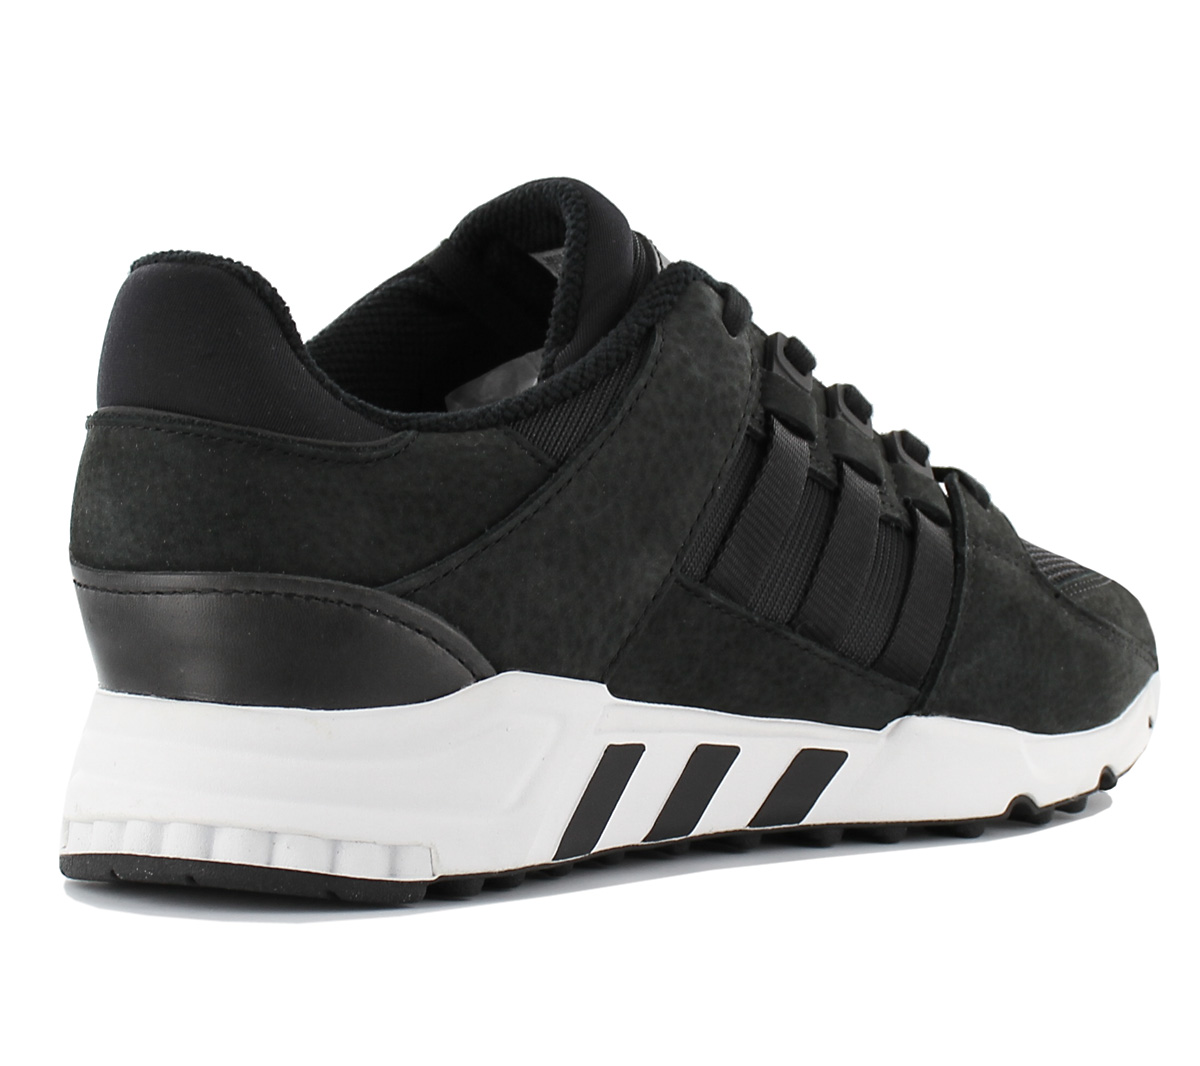 Details about NEW adidas EQT Support RF BB1312 Men Shoes Trainers Sneakers SALE